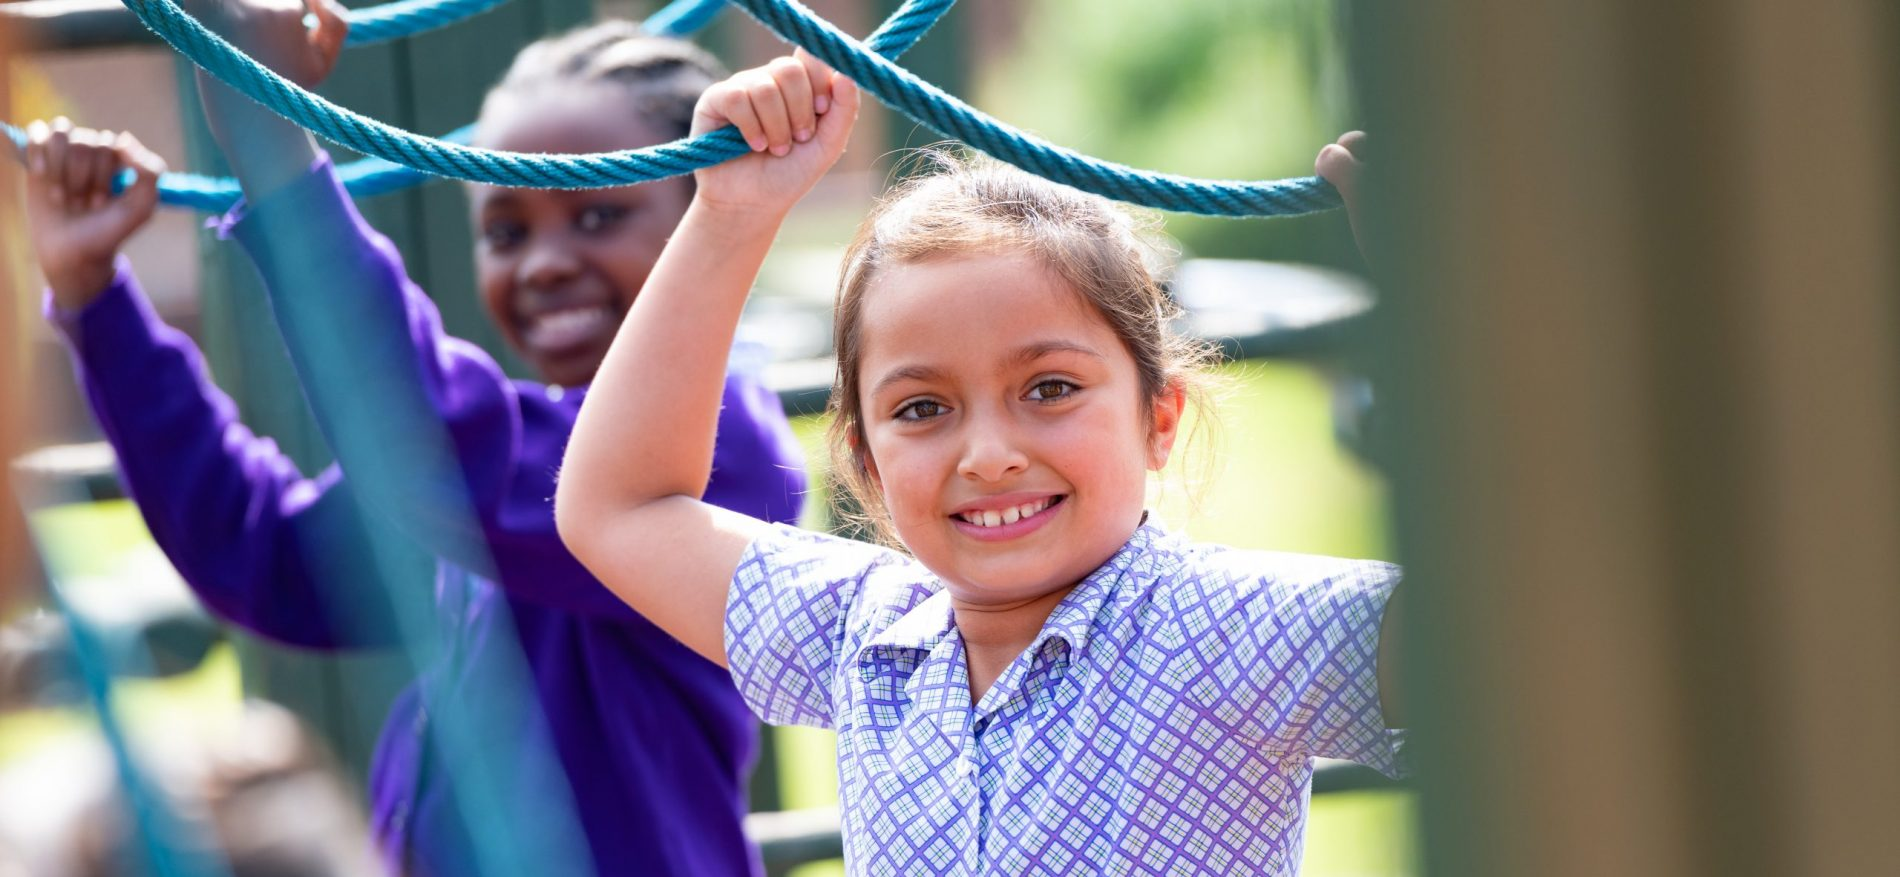 2 girls are holding ropes high at the play park